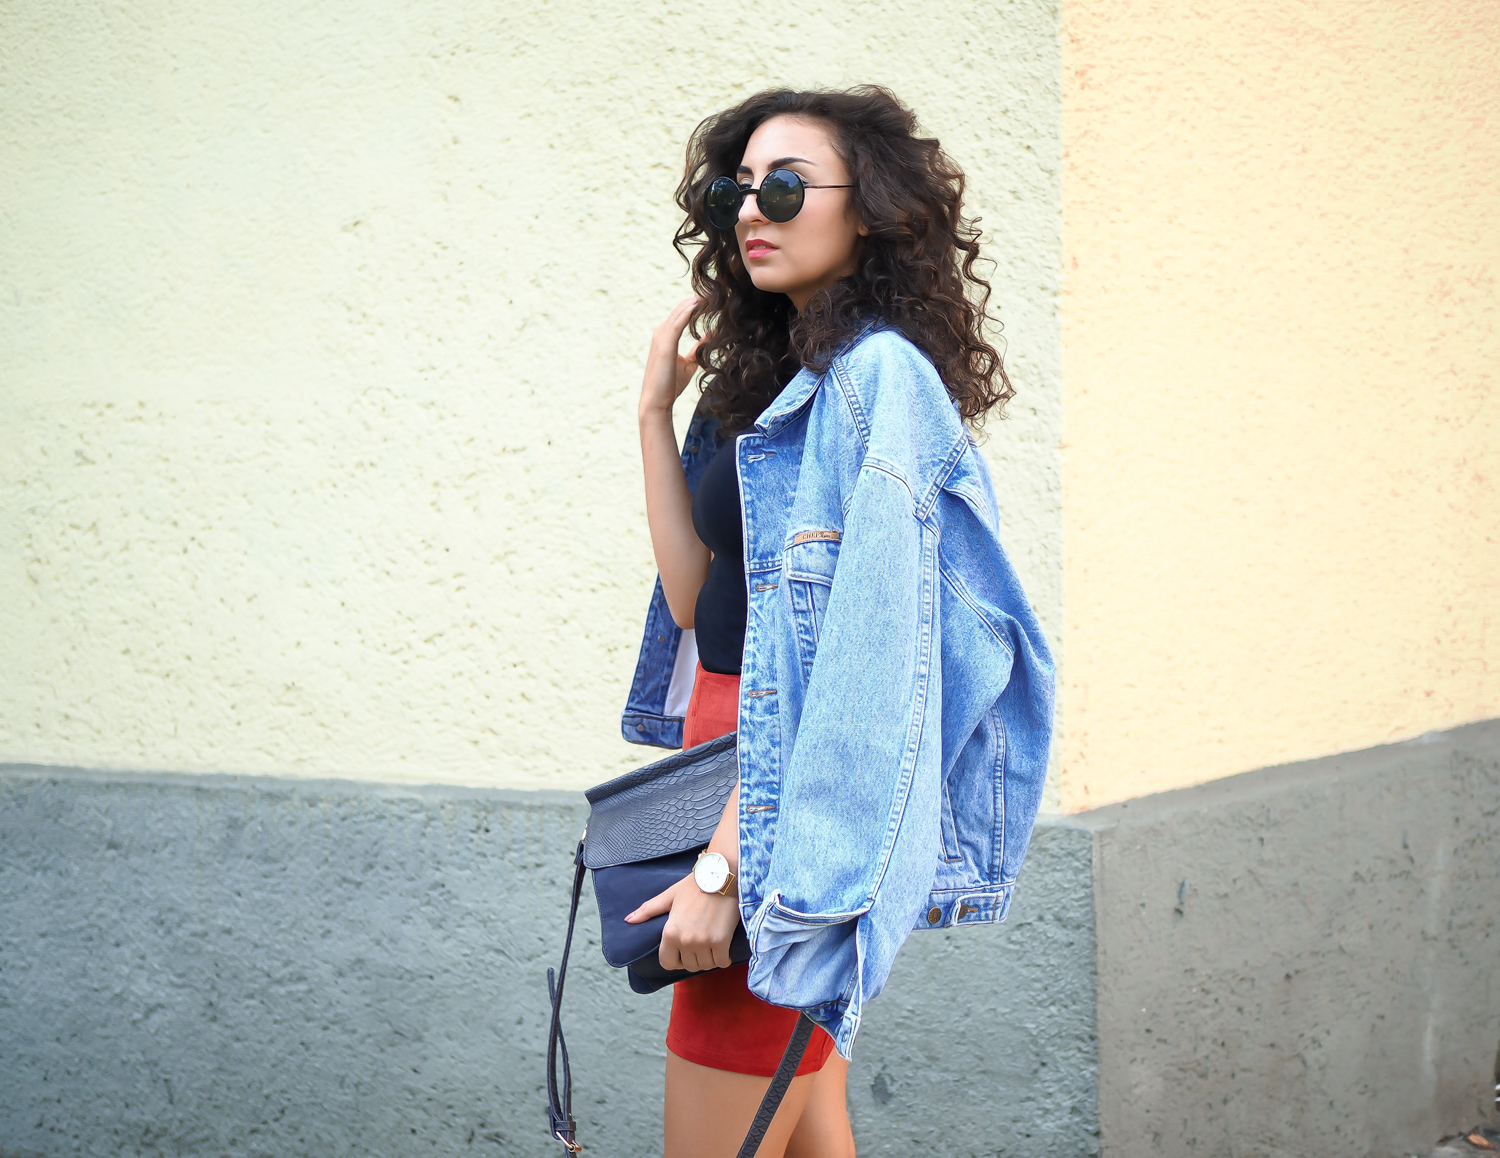 Suede Leather Mini Skirt brown orange pointed boots how to style a vintage denim jacket reserved retro fashion deutschland summerlook fall fashionblogger samieze berlin mode blog